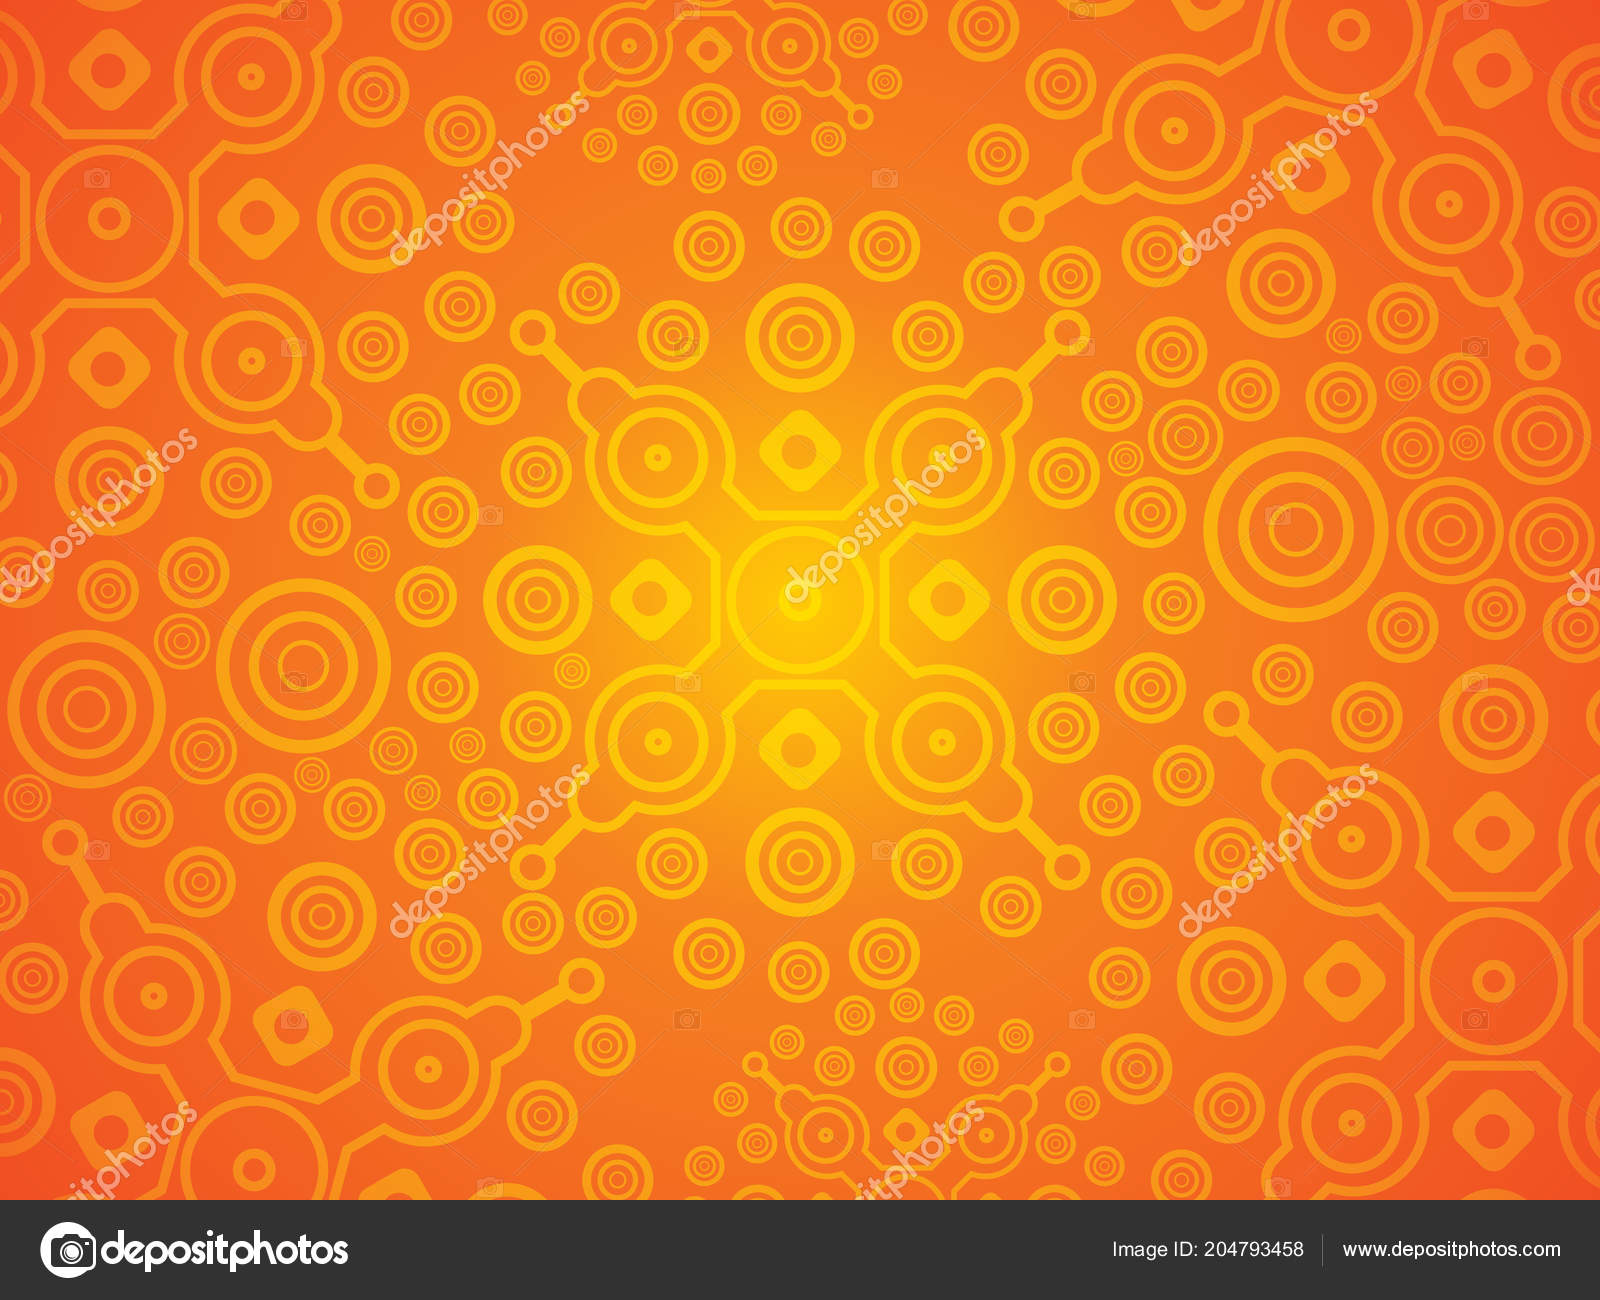 Abstract Artistic Creative Red Texture Background Vector